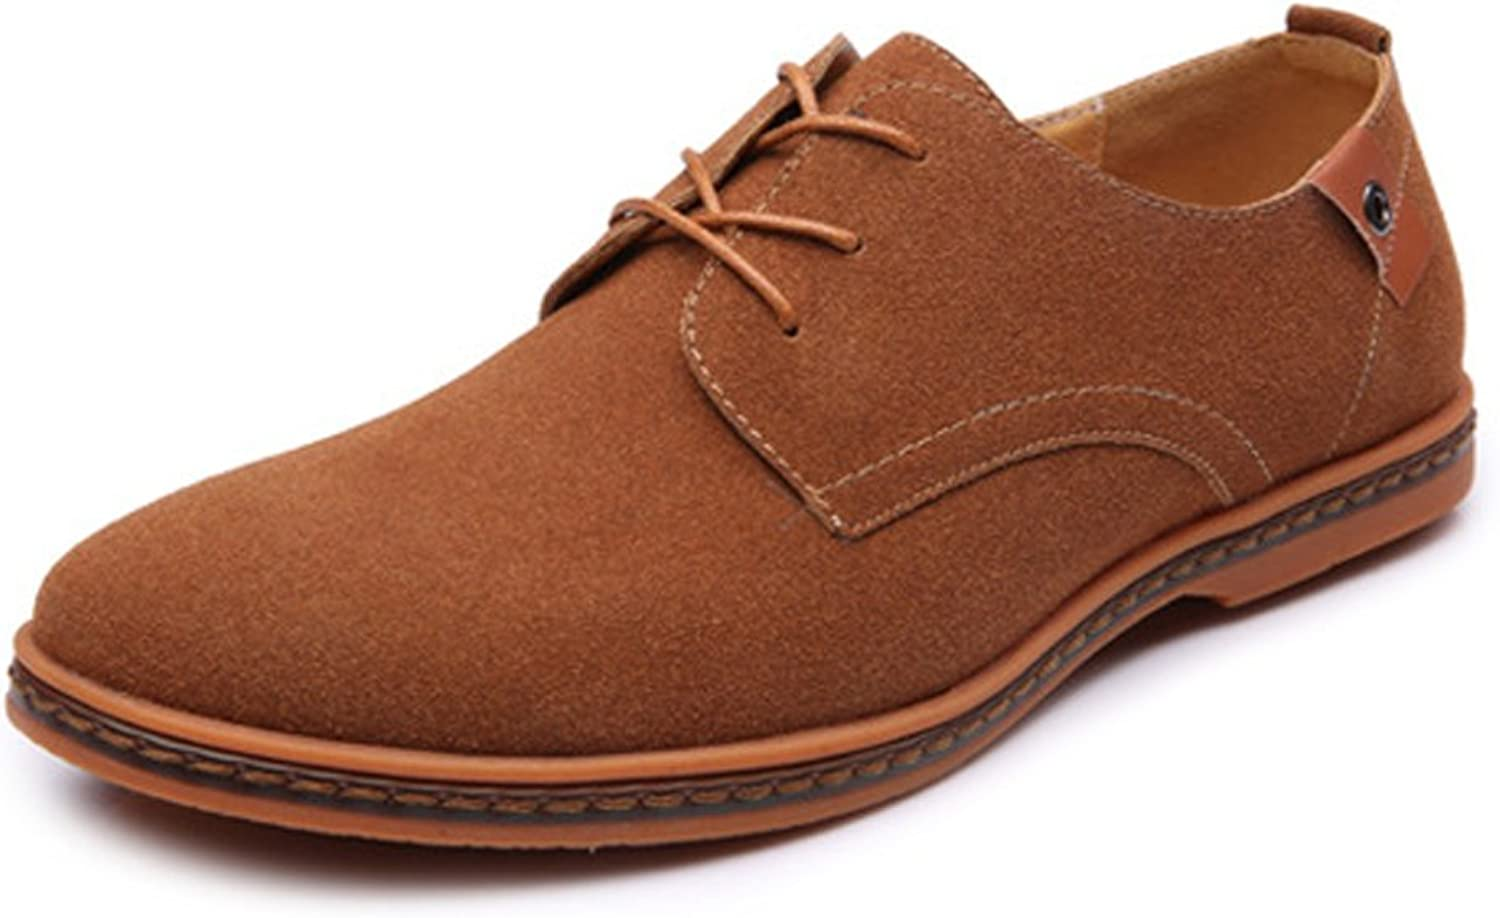 Fashion shoes,Casual shoes Men's fashion casual shoes with casual oxford shoes microfiber suede leather upper large size Personality shoes (color   Brown, Size   10.5 UK)